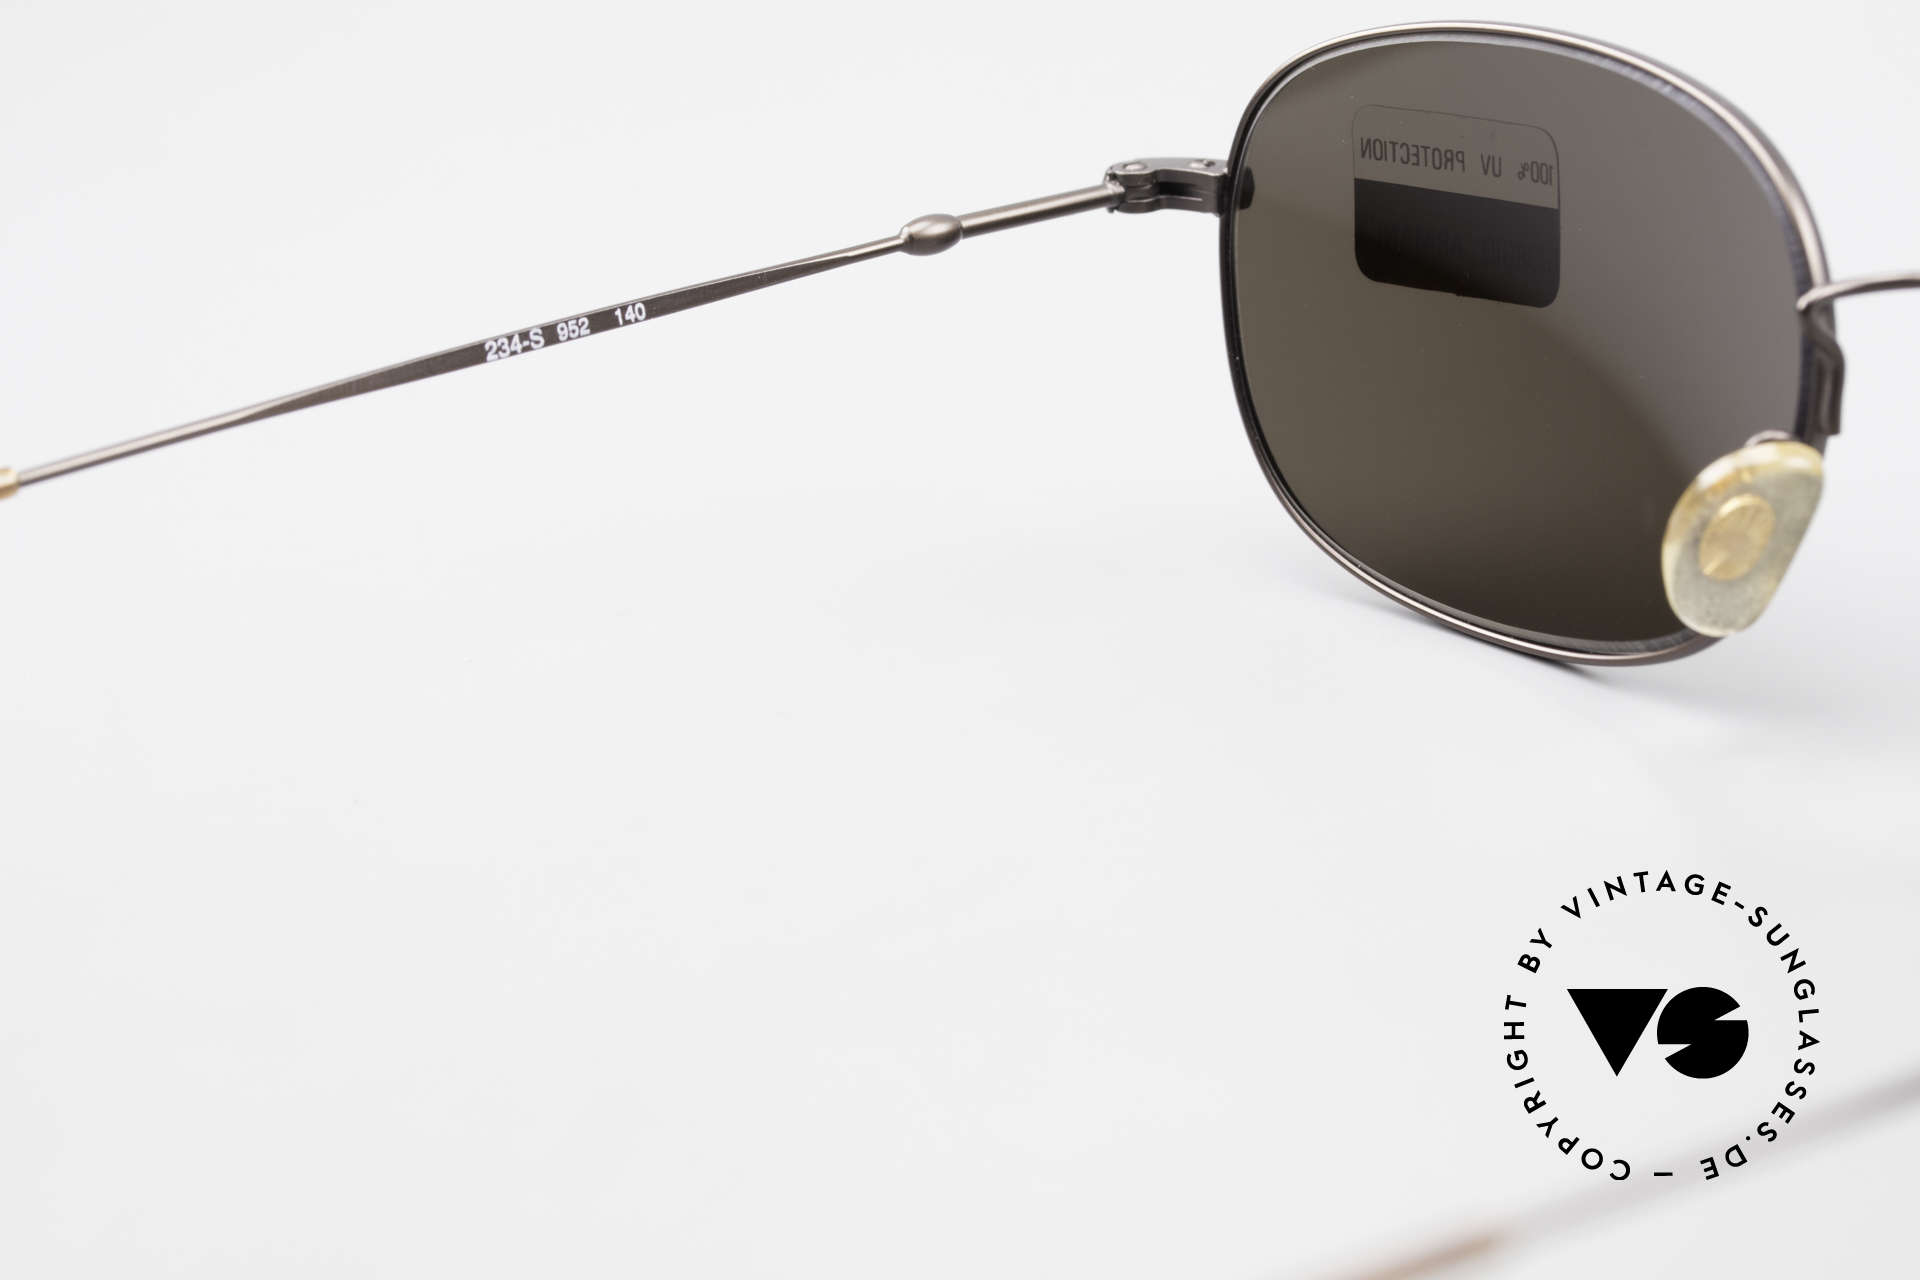 Giorgio Armani 234 Classic Designer Shades 80's, sun lenses (100% UV) can be replaced optionally, Made for Men and Women